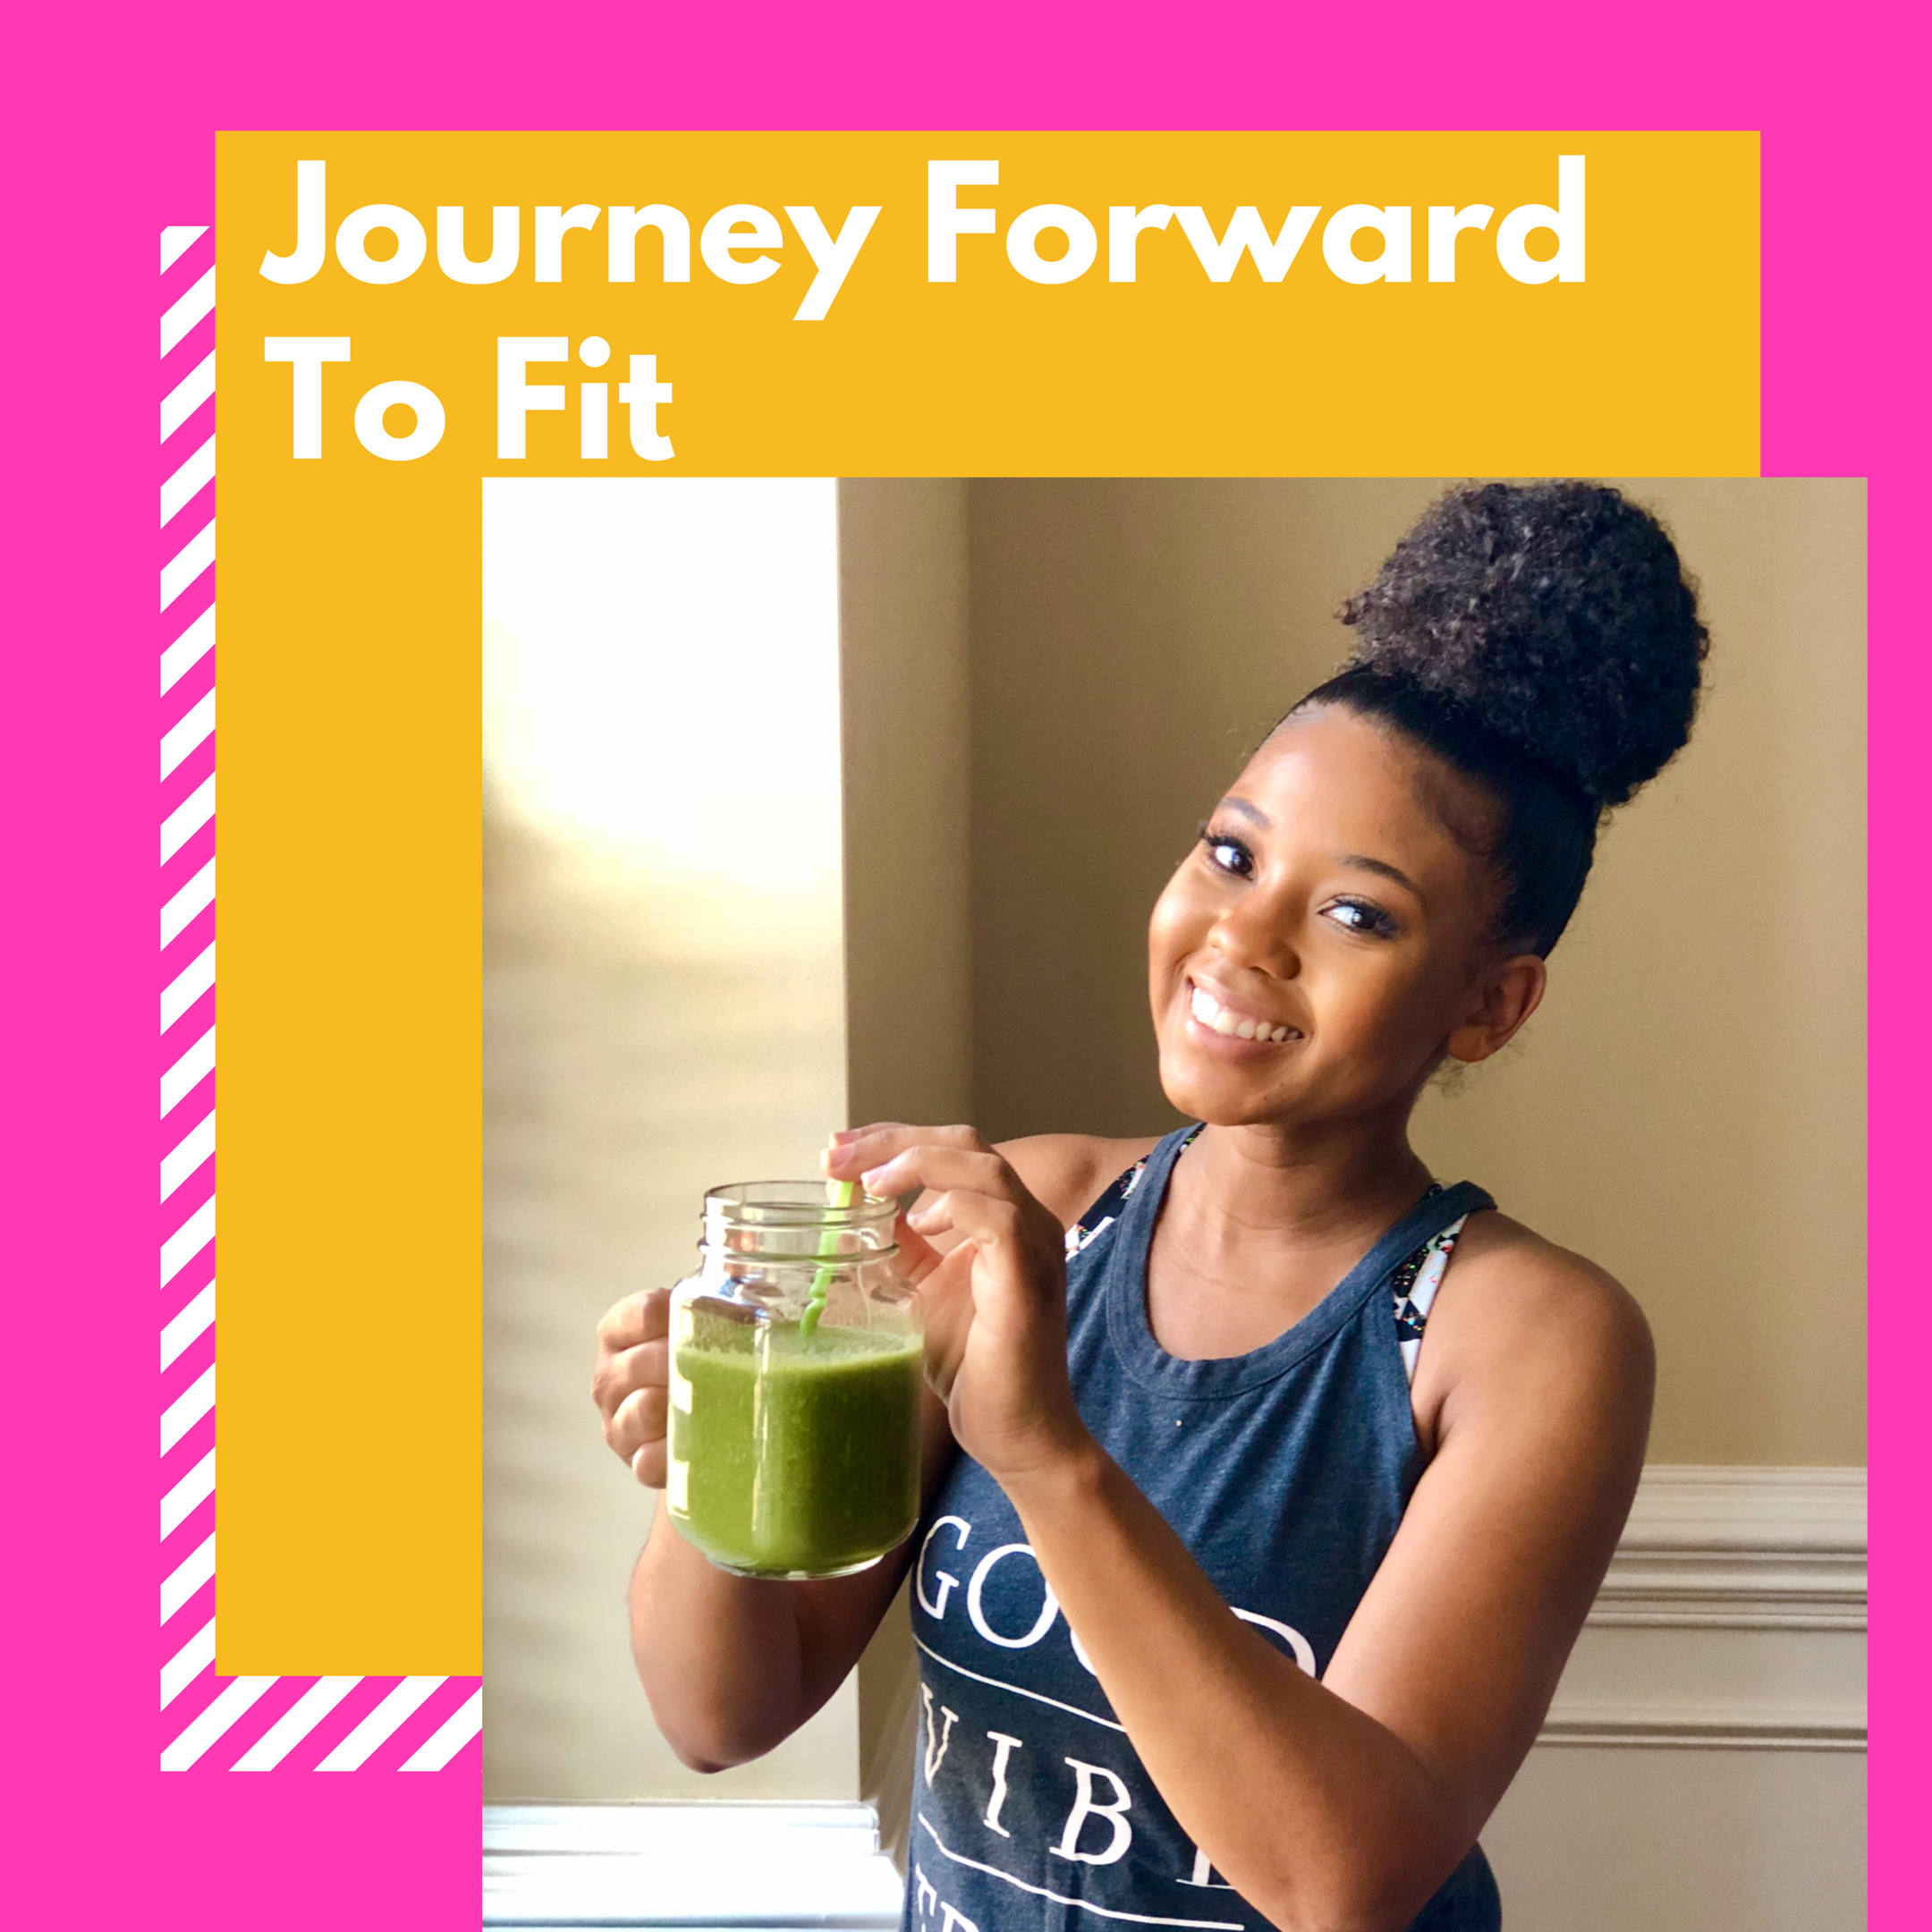 - Prior to pregnancy, I was in great shape. Now that my body has gone through so many changes, I'm working on getting back to a healthier lifestyle by moving forward in my fitness.